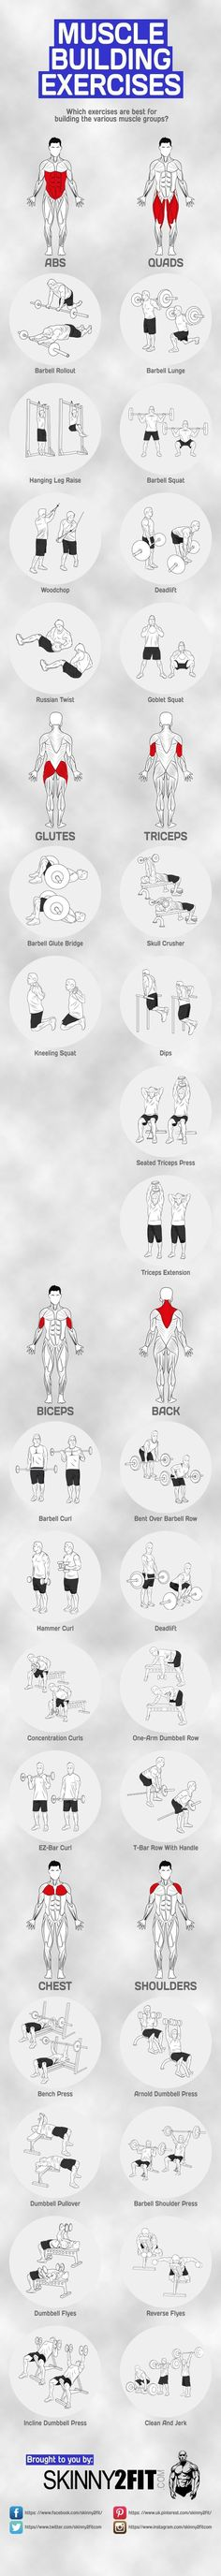 awesome What are the top muscle building exercises for each muscle group? This graphic w...